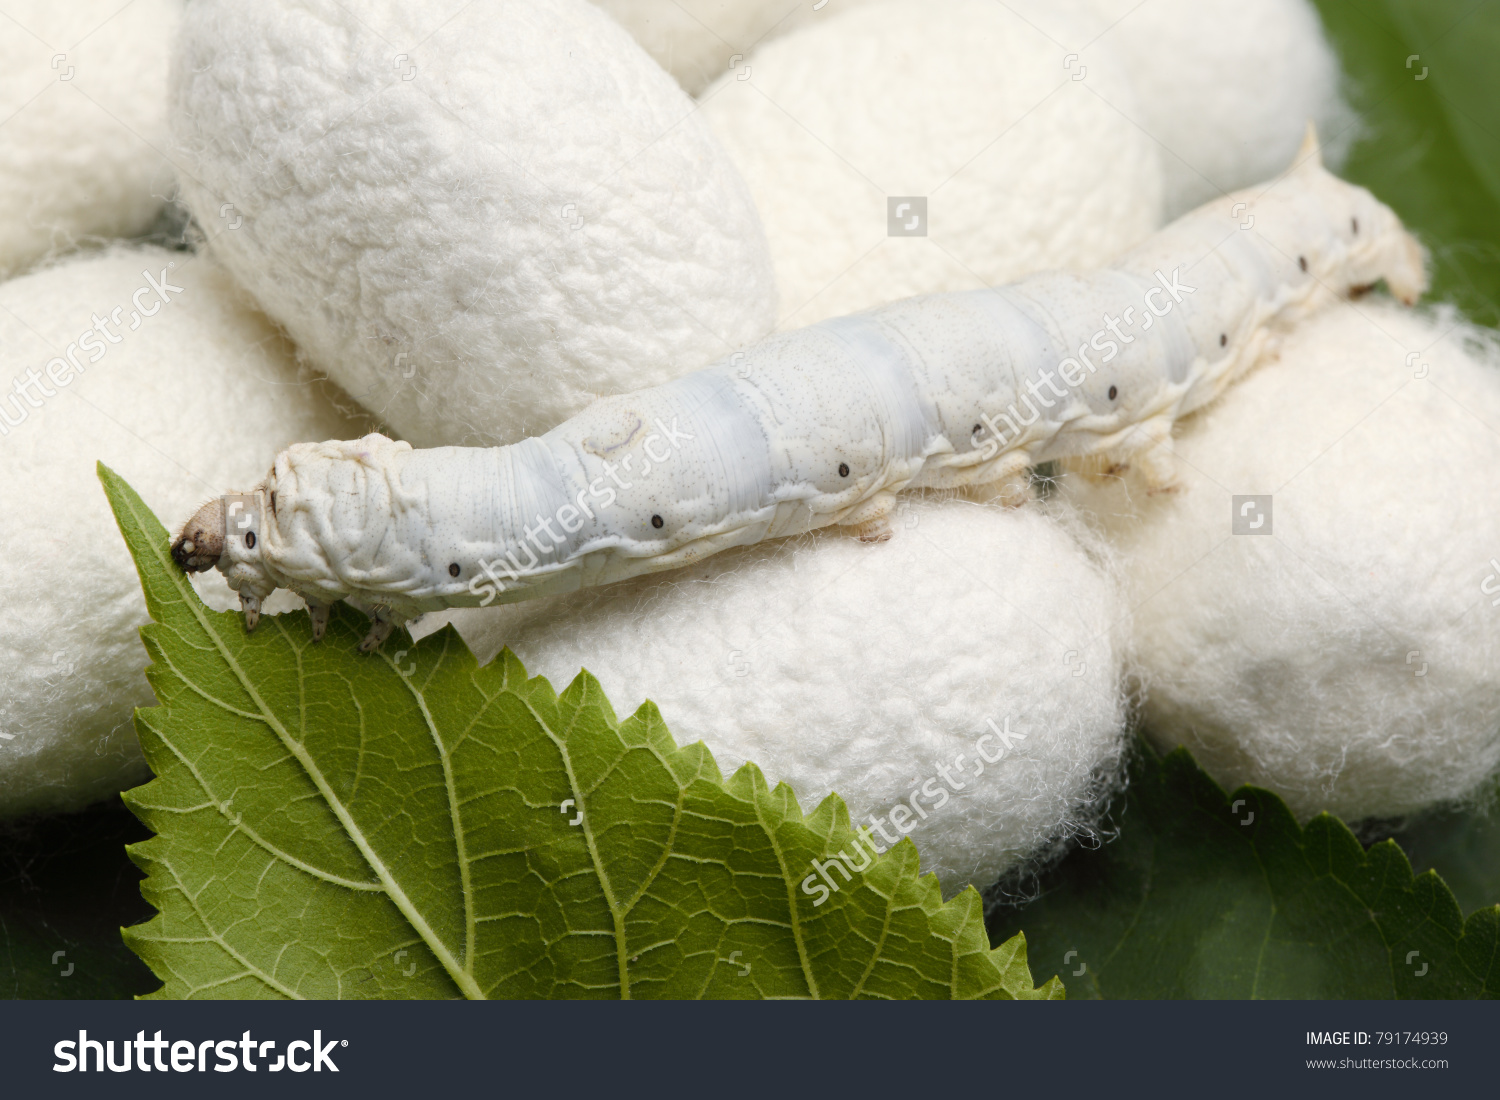 Silk Cocoons Silk Worm On Green Stock Photo 79174939.